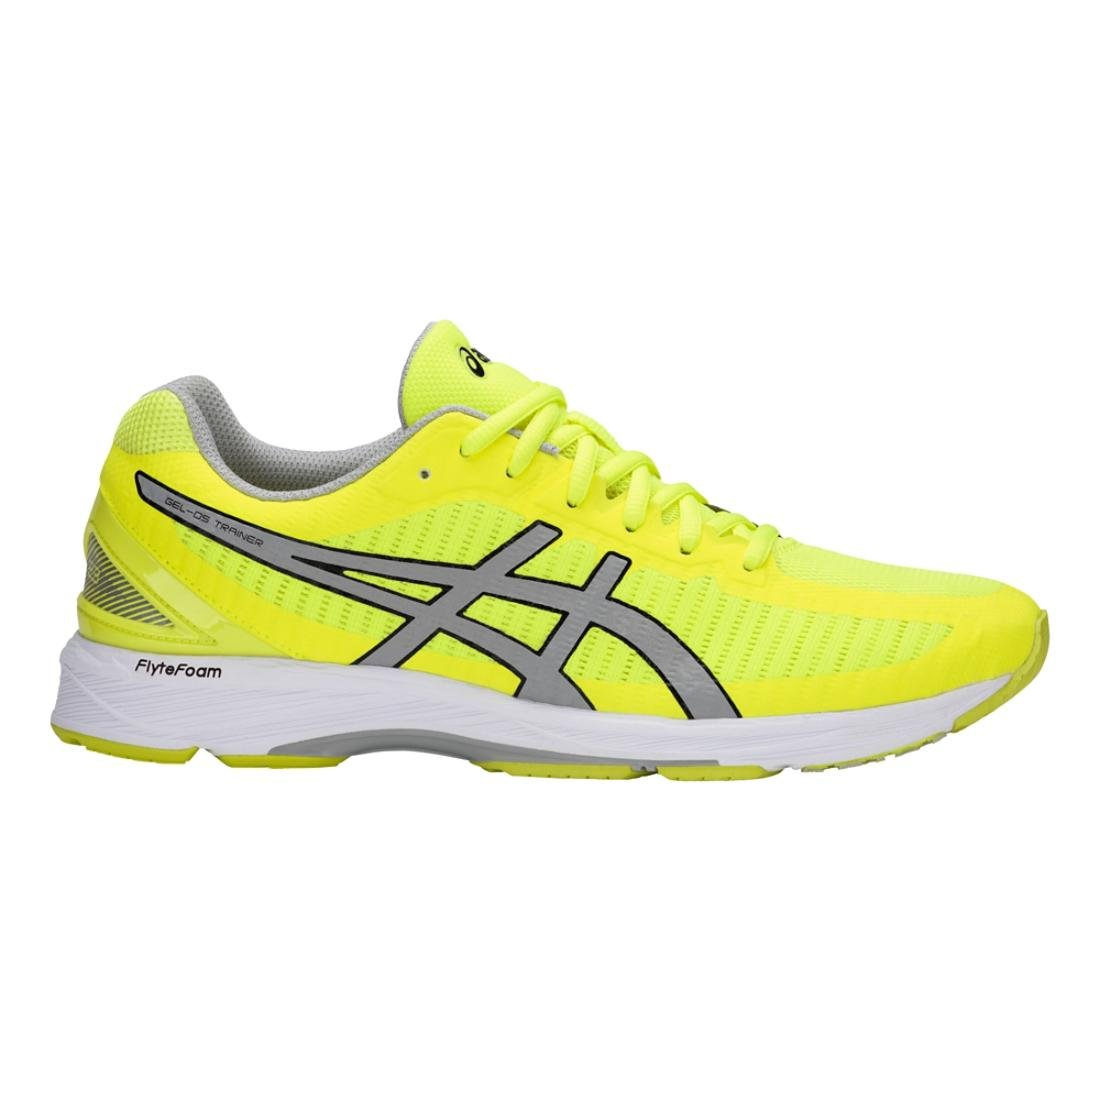 ASICS Mens Gel-DS Trainer 23 B071F87WQN 10.5 D(M) US|Safety Yellow/Mid Grey/White